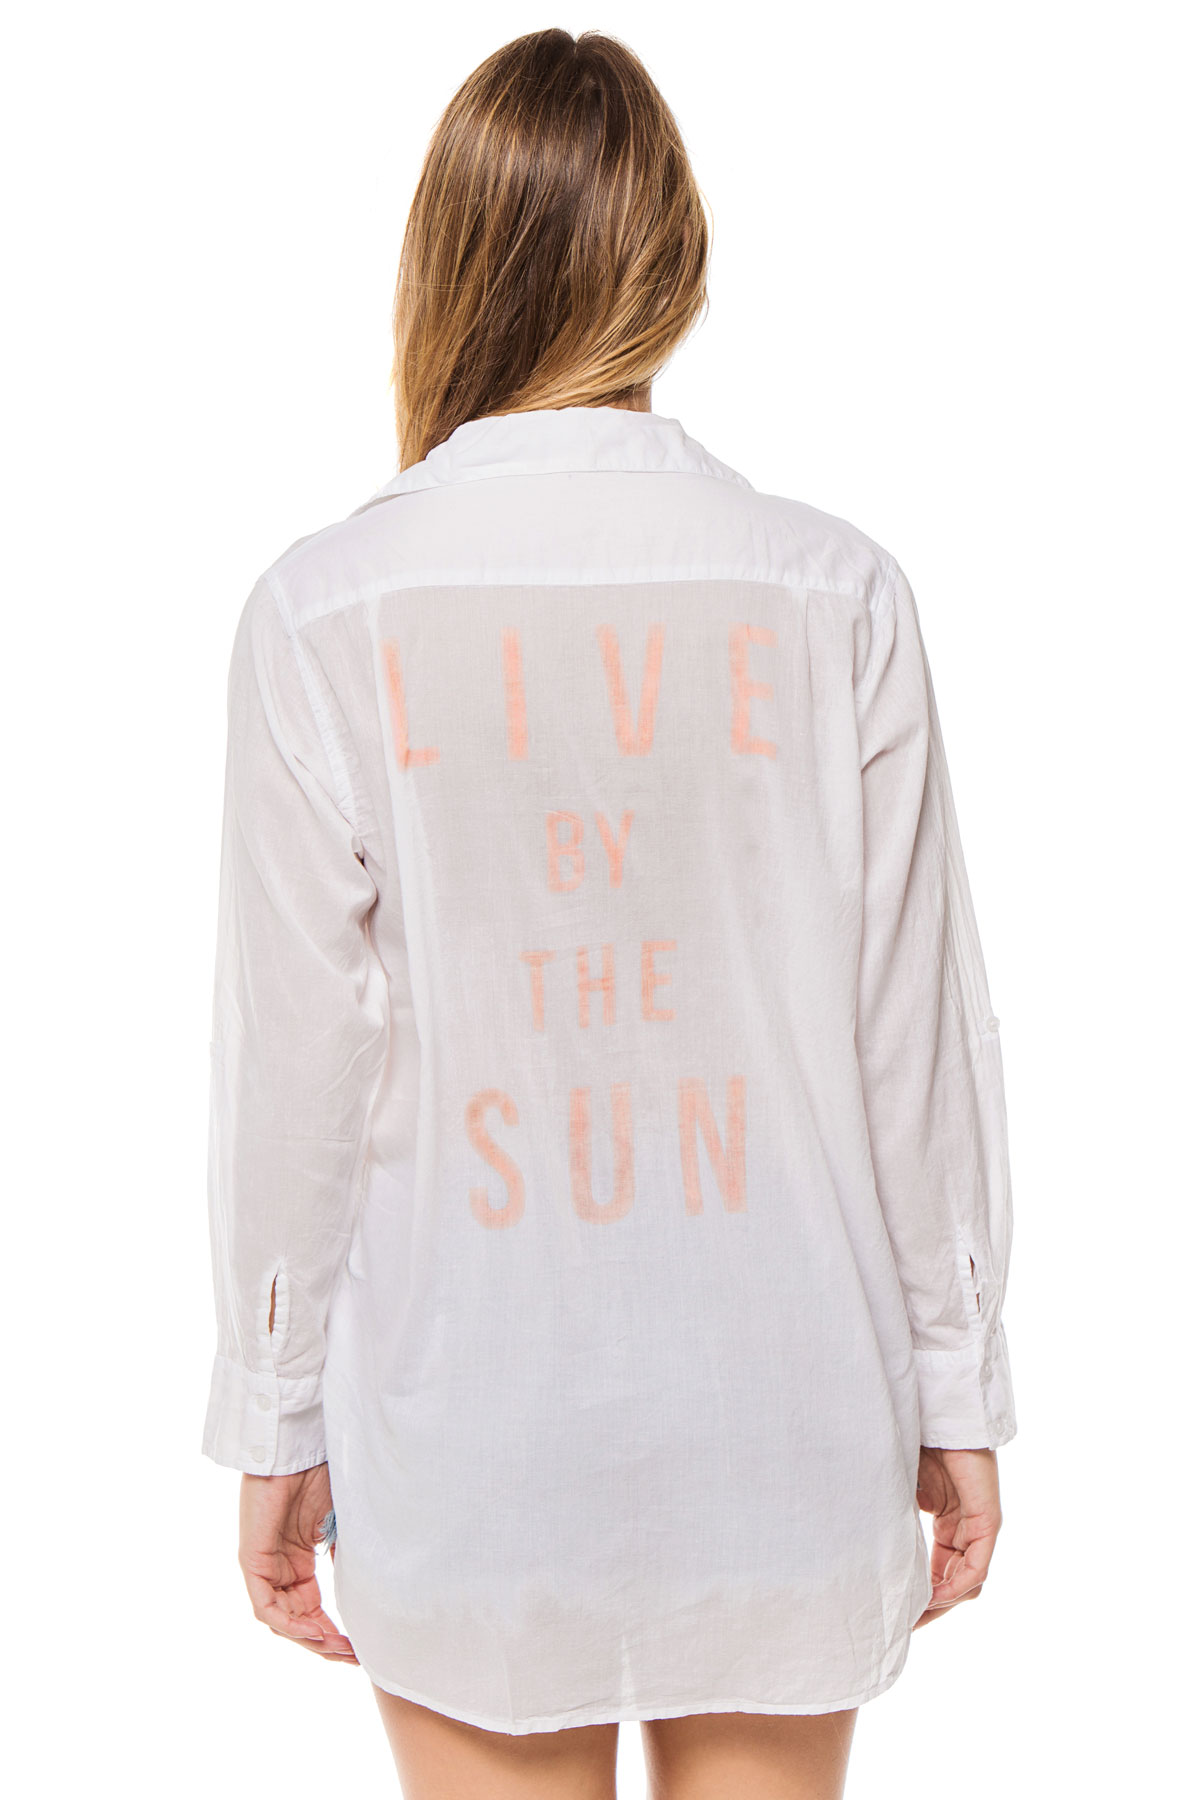 Live By The Sun Blouse - White/Light Coral 2